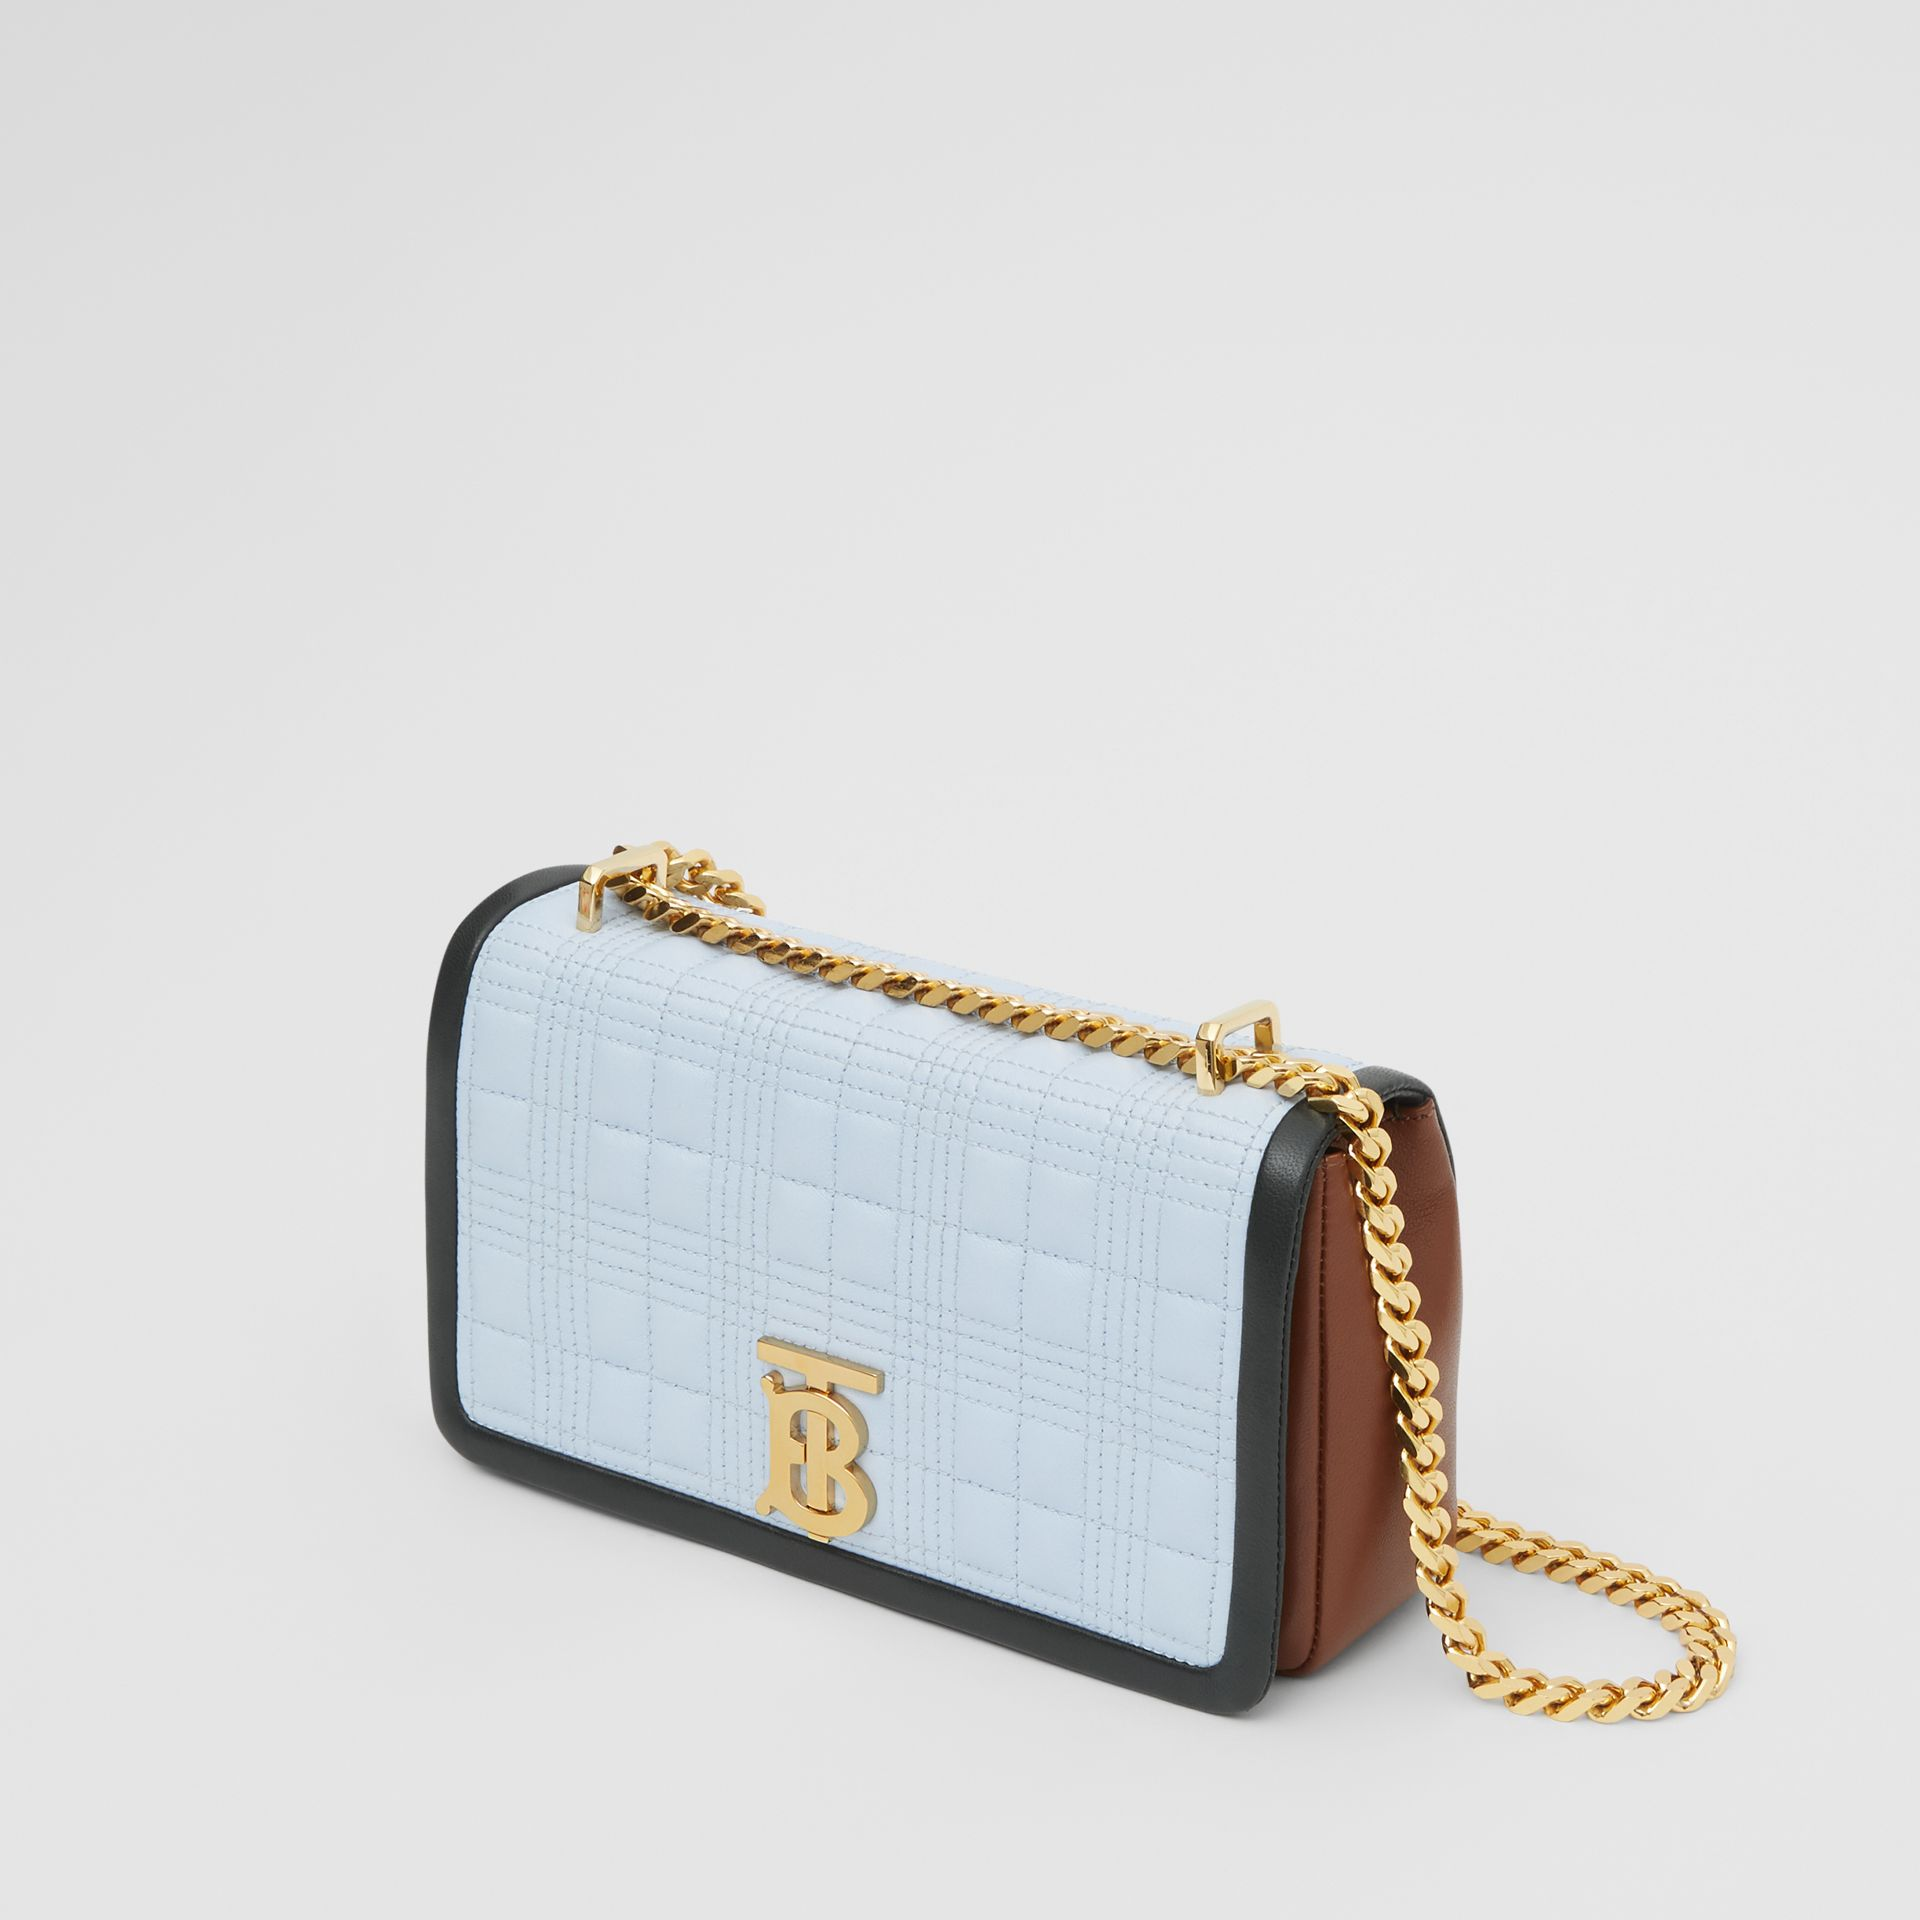 Small Quilted Tri-tone Lambskin Lola Bag in Pale Blue/dark Pine - Women | Burberry - gallery image 3